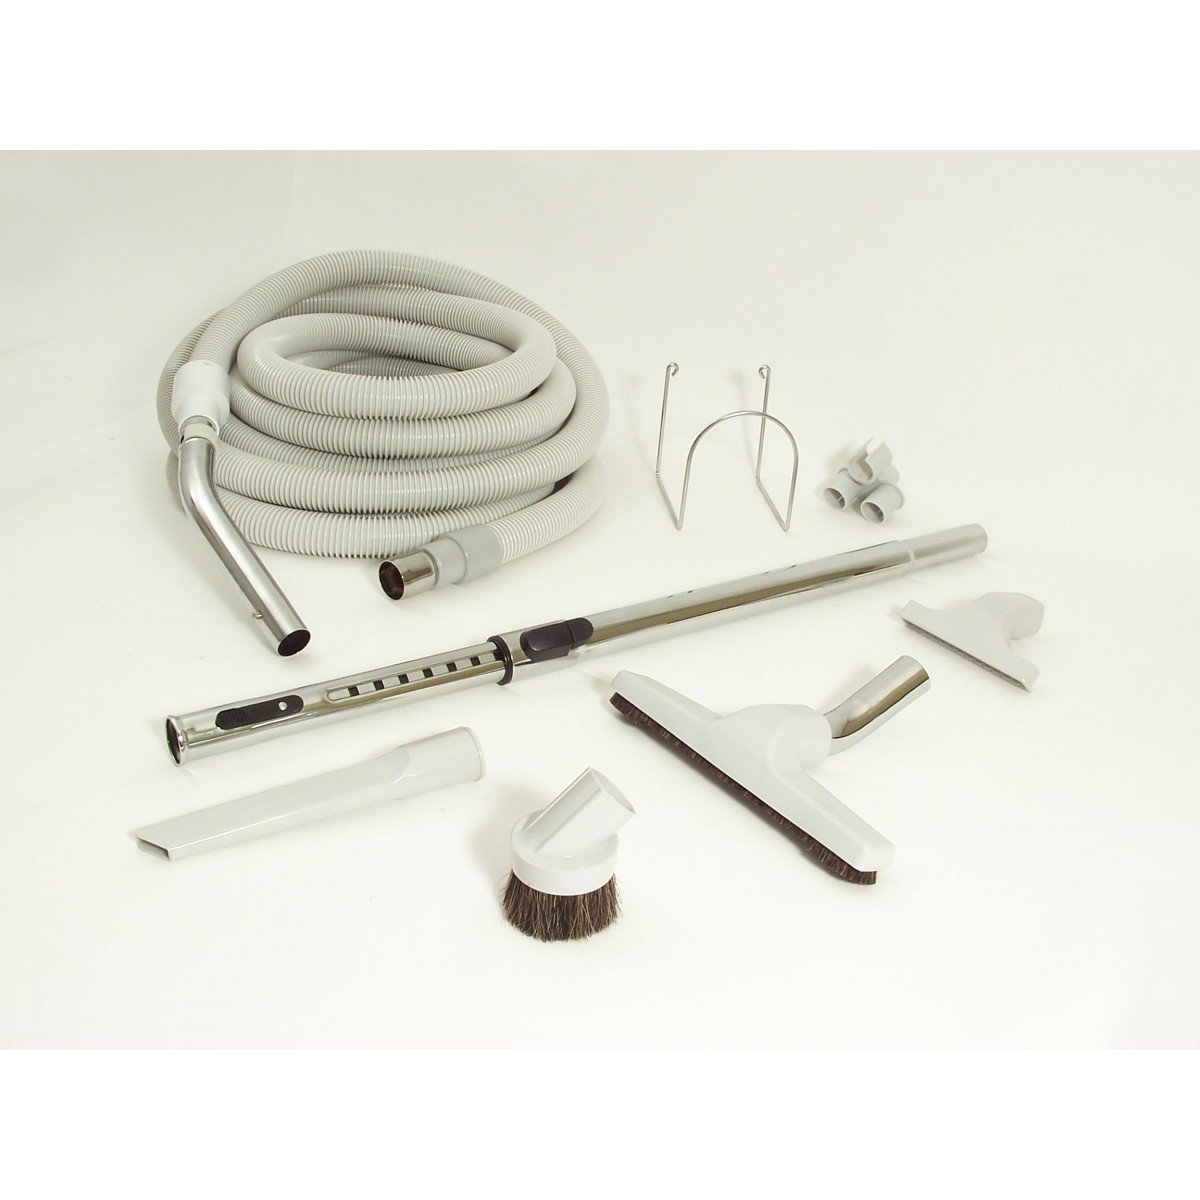 CENTRAL VACUUM KIT - 30' HOSE REGULAR - TOOLS AND WAND - GREY Johnny Vac